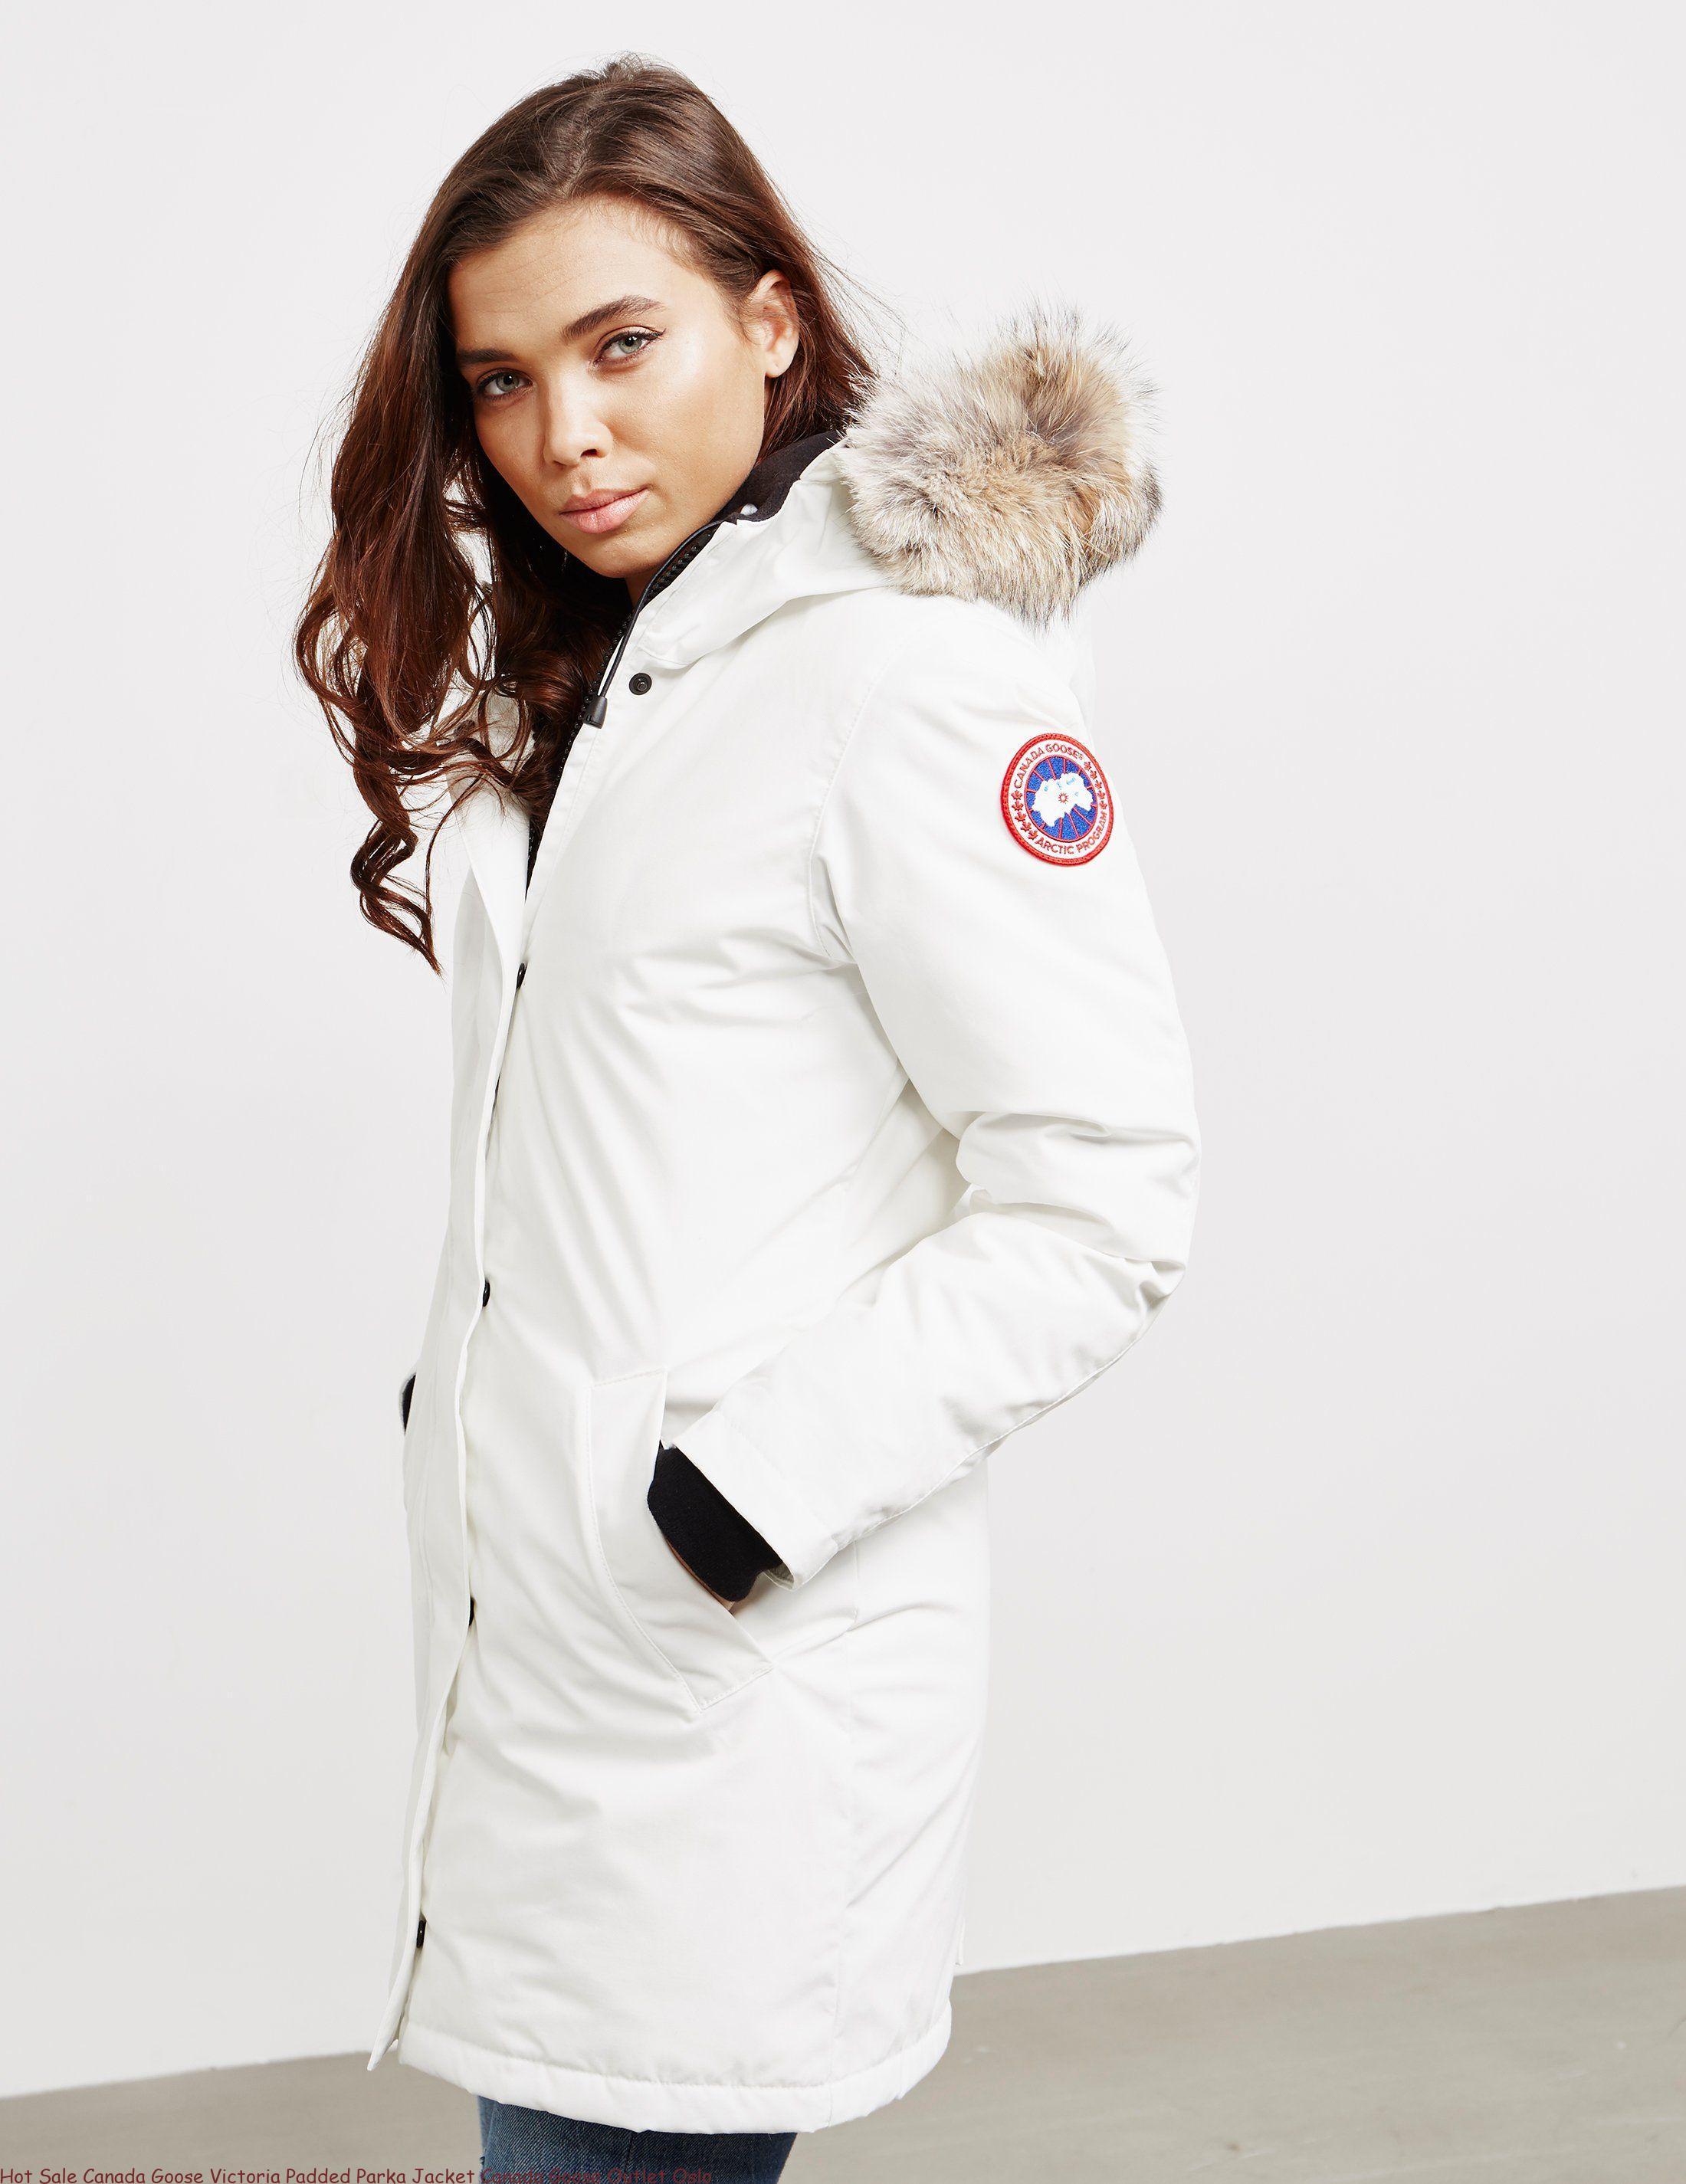 3ae50ee508970e Hot Sale Canada Goose Victoria Padded Parka Jacket Canada Goose Outlet Oslo